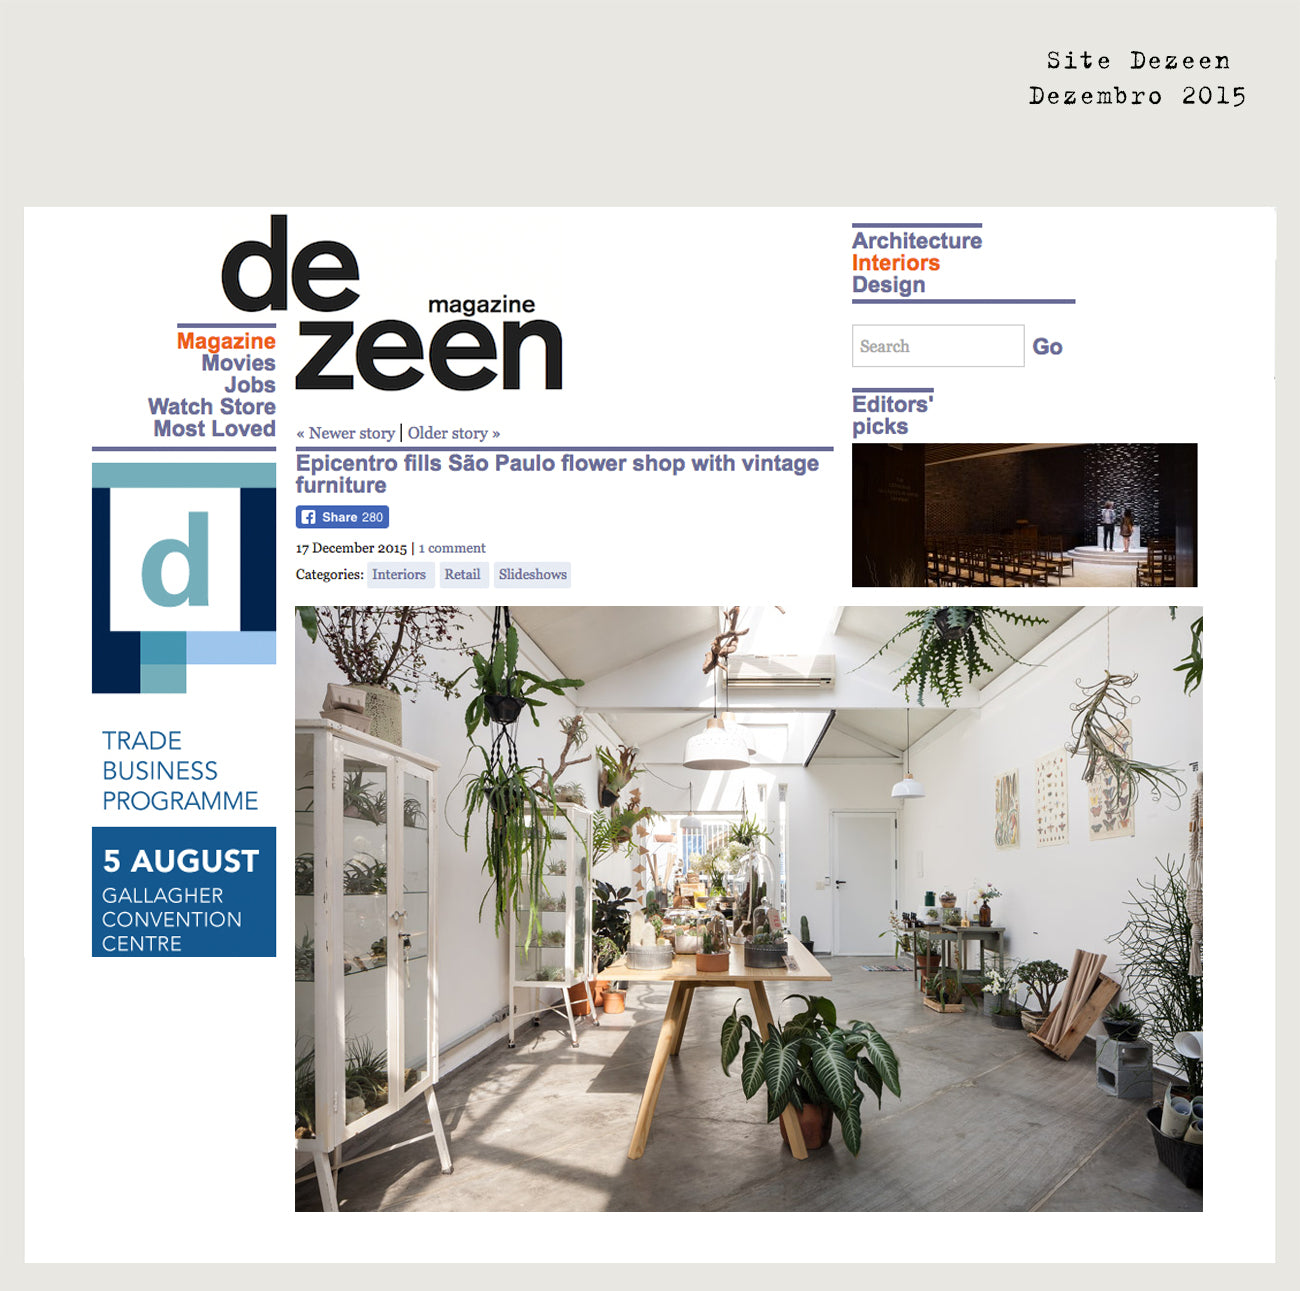 FLO atelier botânico featured on Dezeen